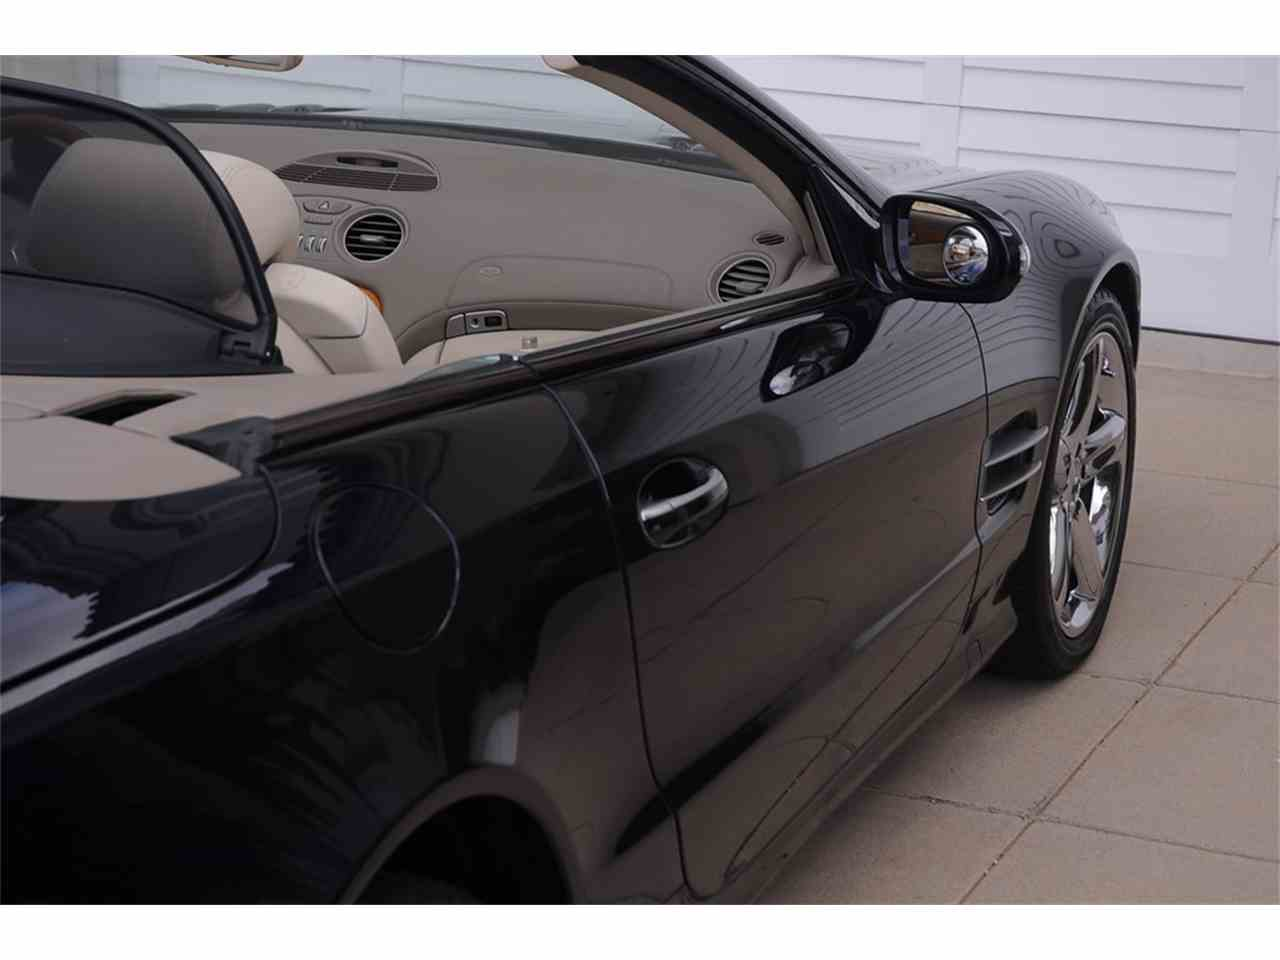 Large Picture of 2003 Mercedes-Benz SL500 located in Costa Mesa California - $13,990.00 Offered by Star European Inc. - M694